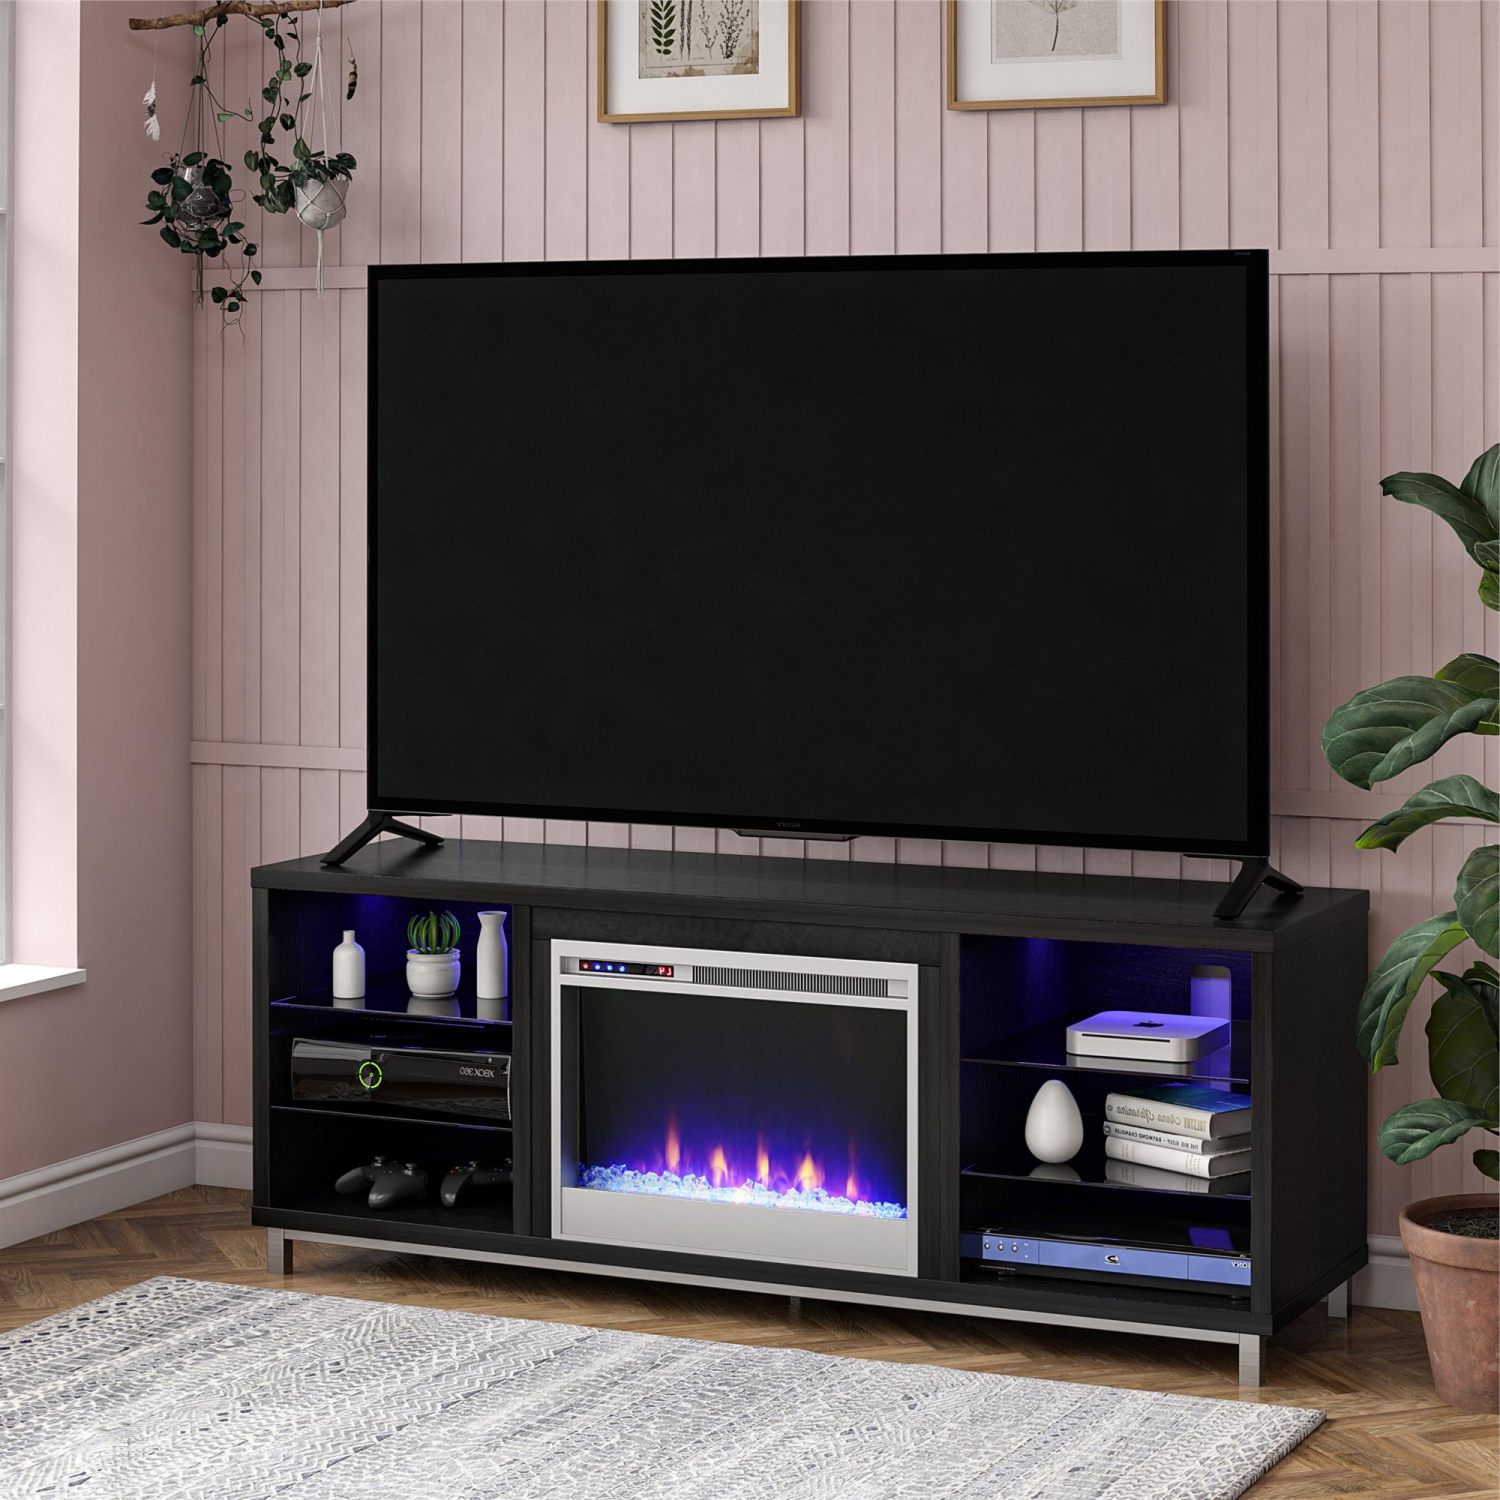 """Broward Tv Stands For Tvs Up To 70"""" Within Best And Newest Electric Lumina Fireplace Tv Stand For Tvs Up To 70 Wide (View 2 of 25)"""